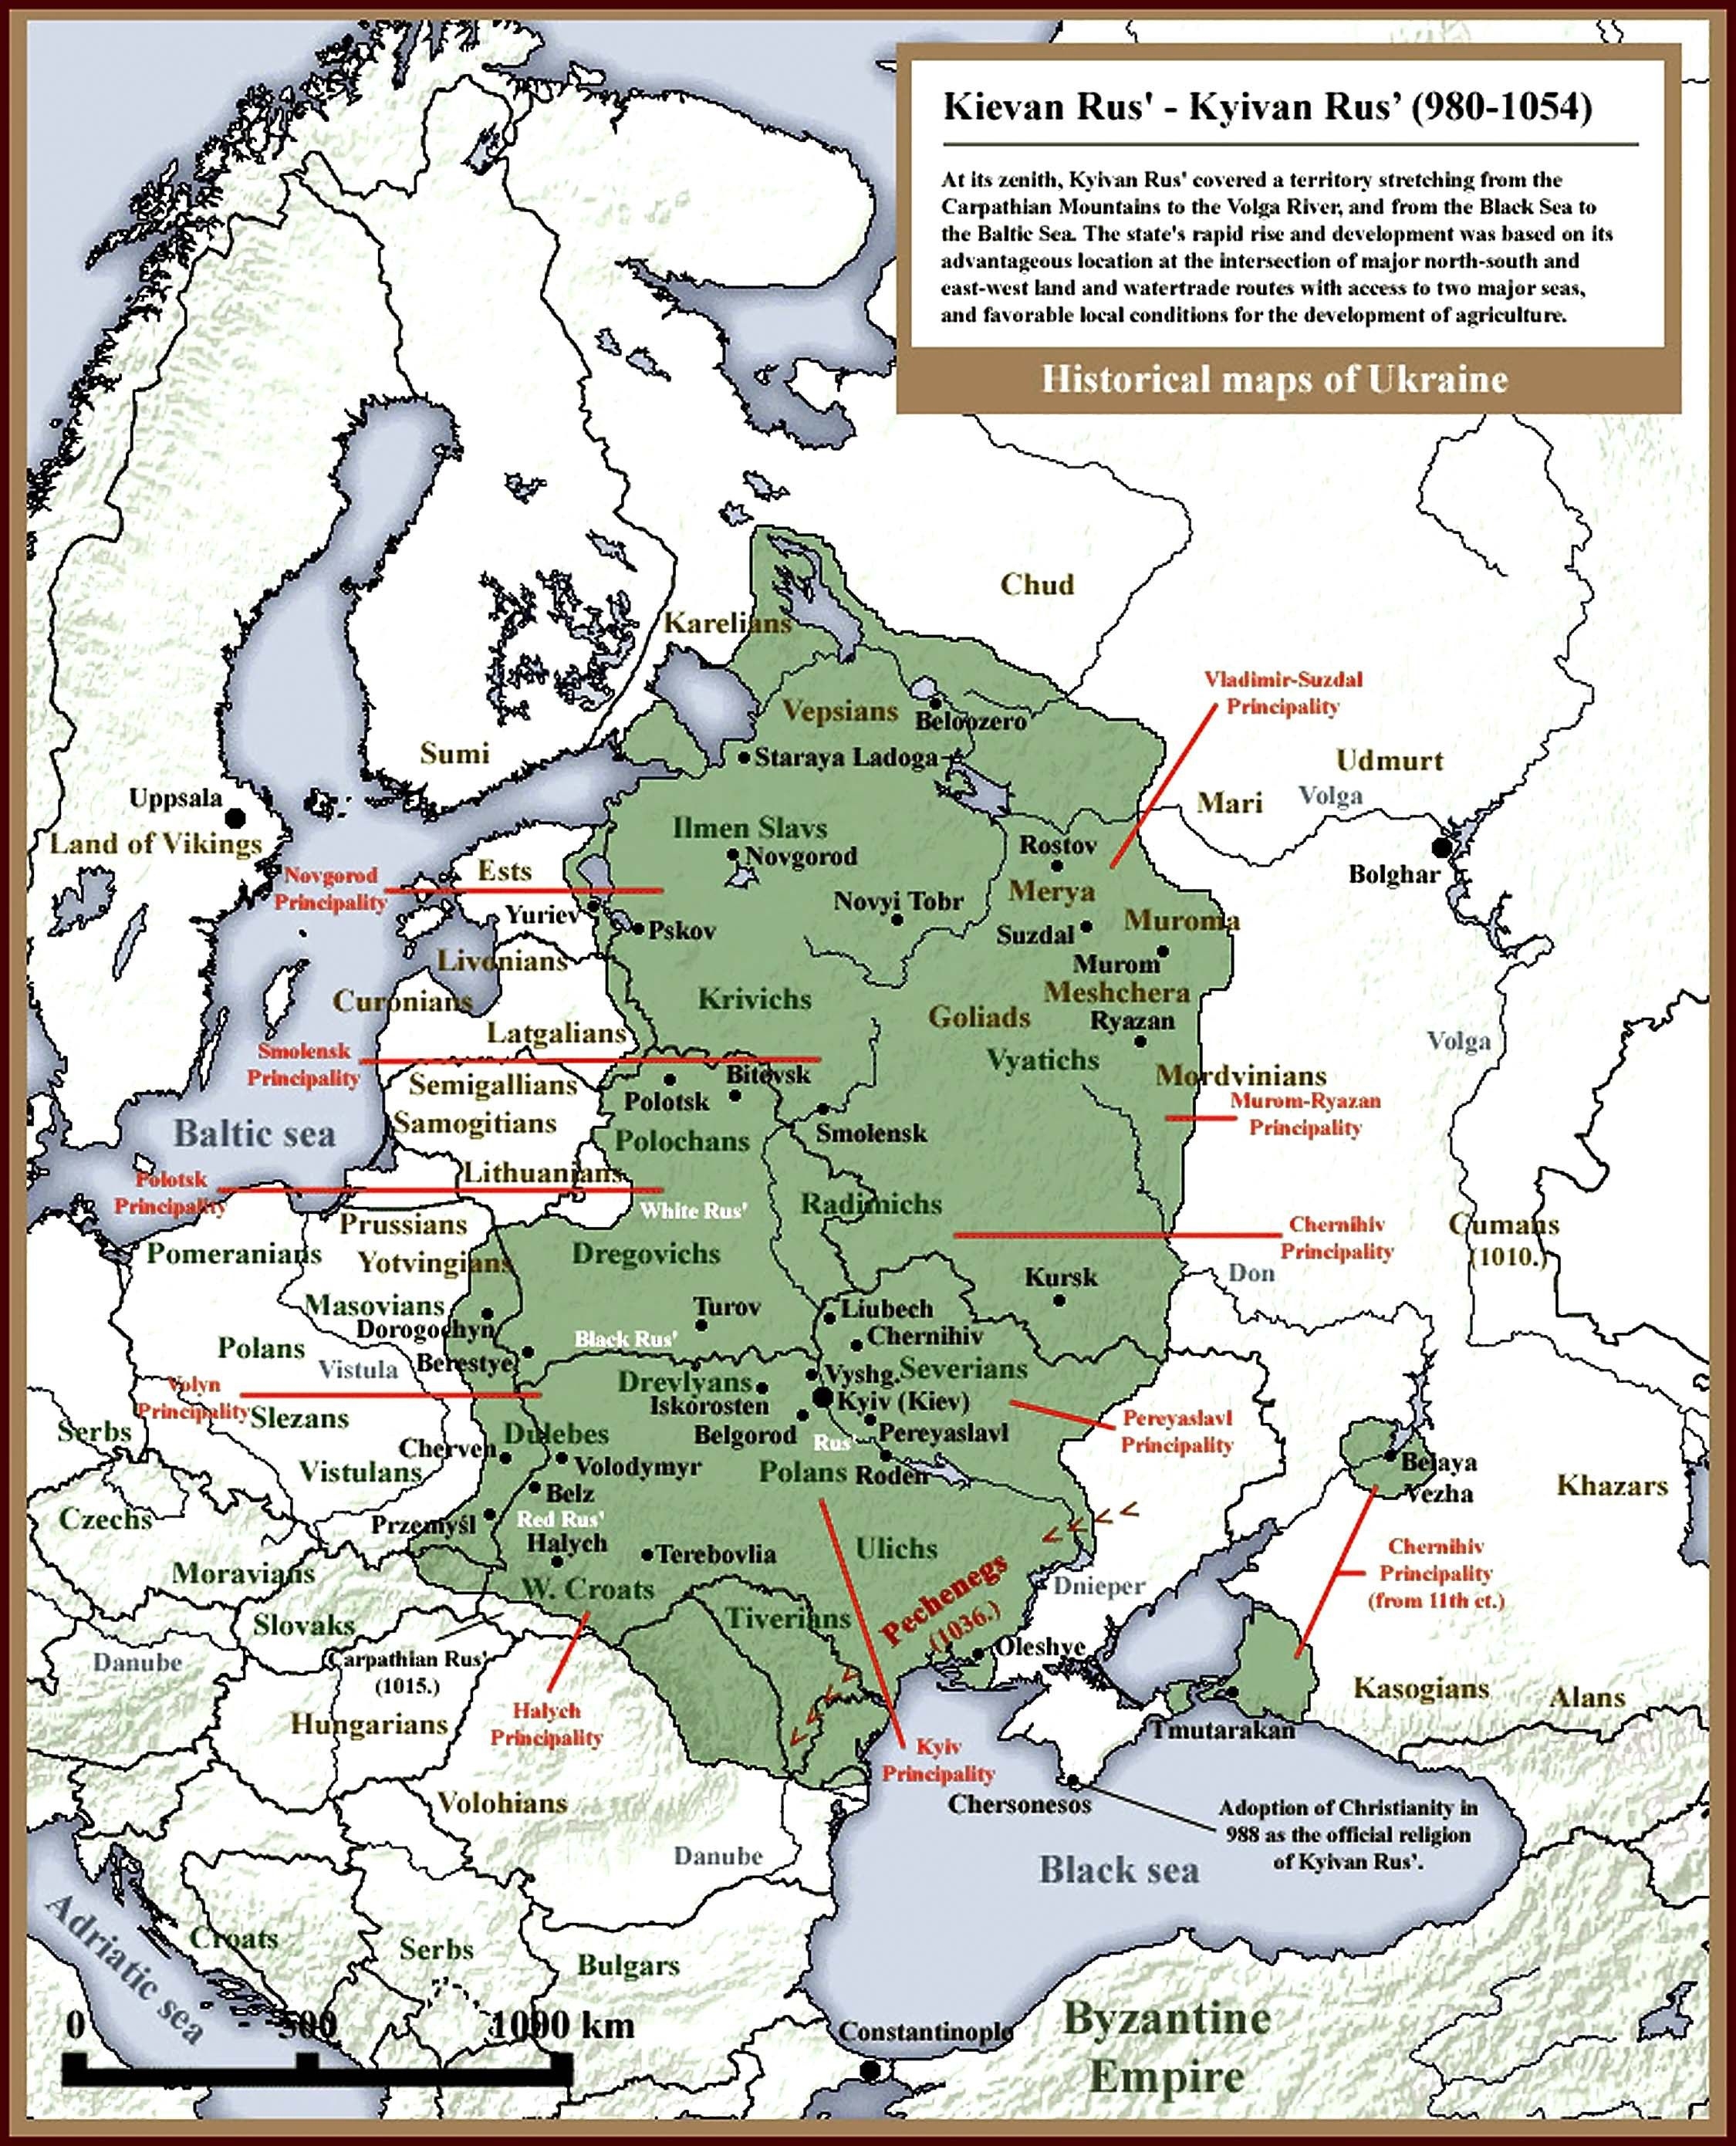 Maps R Us Win for history in Ukraine: Kyivan Rus archeology site to become